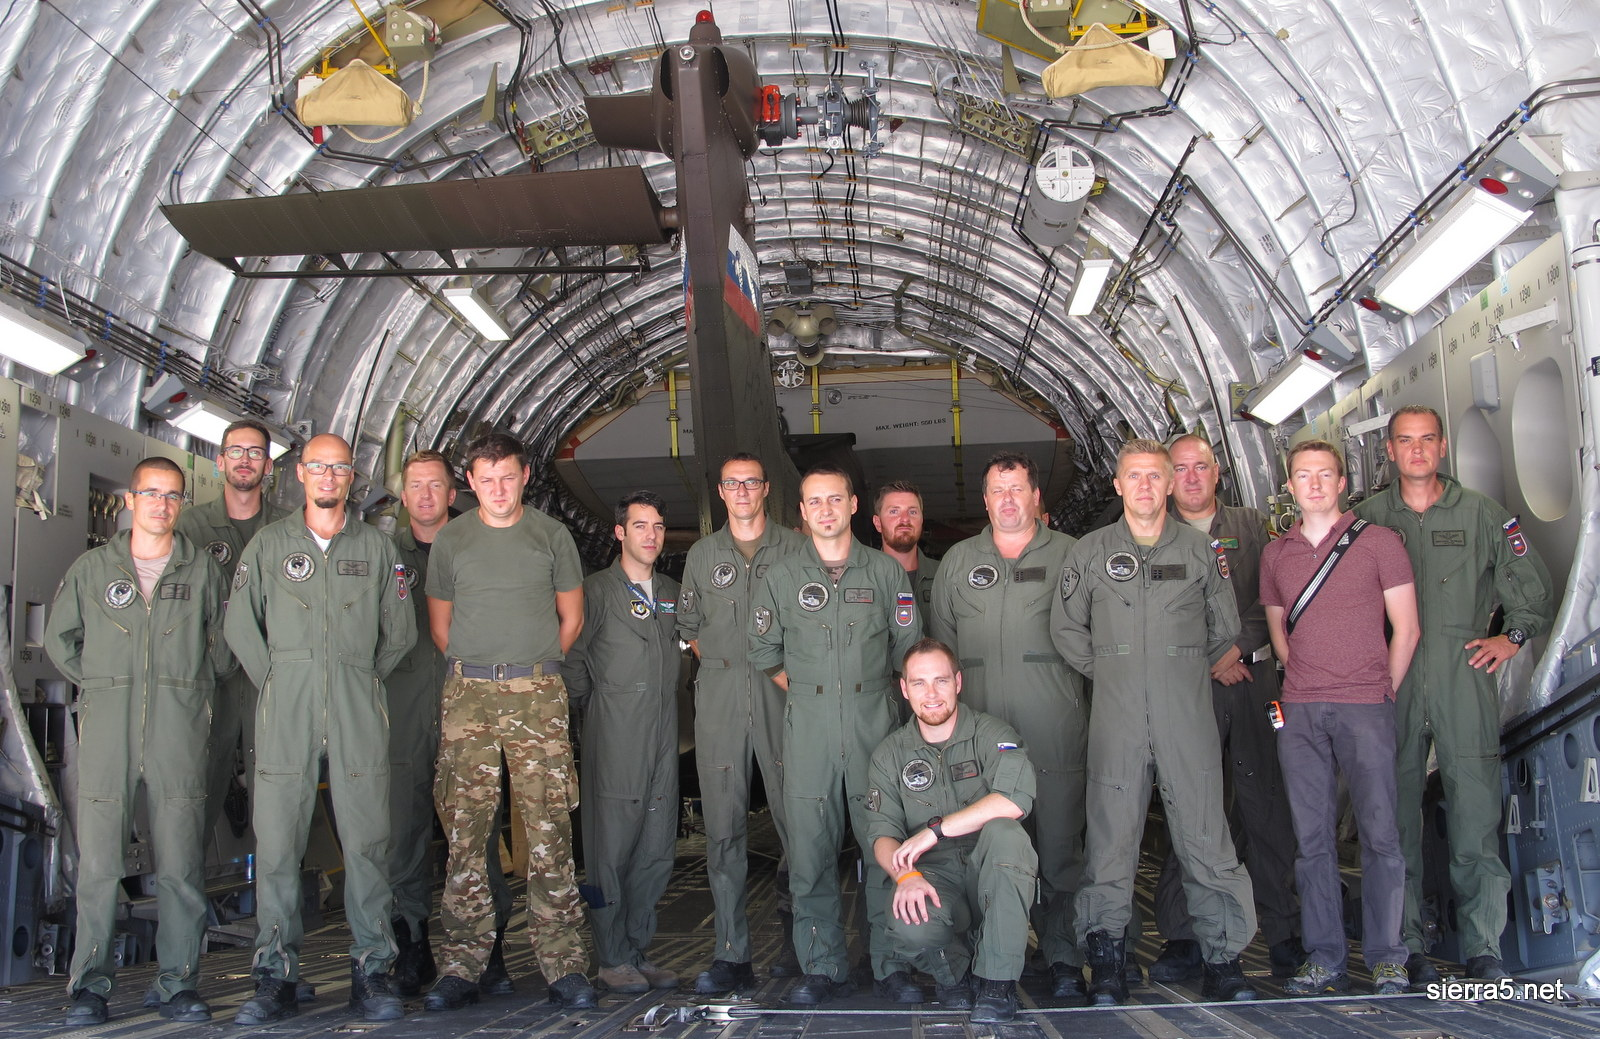 The team that successfully loaded the helicopter